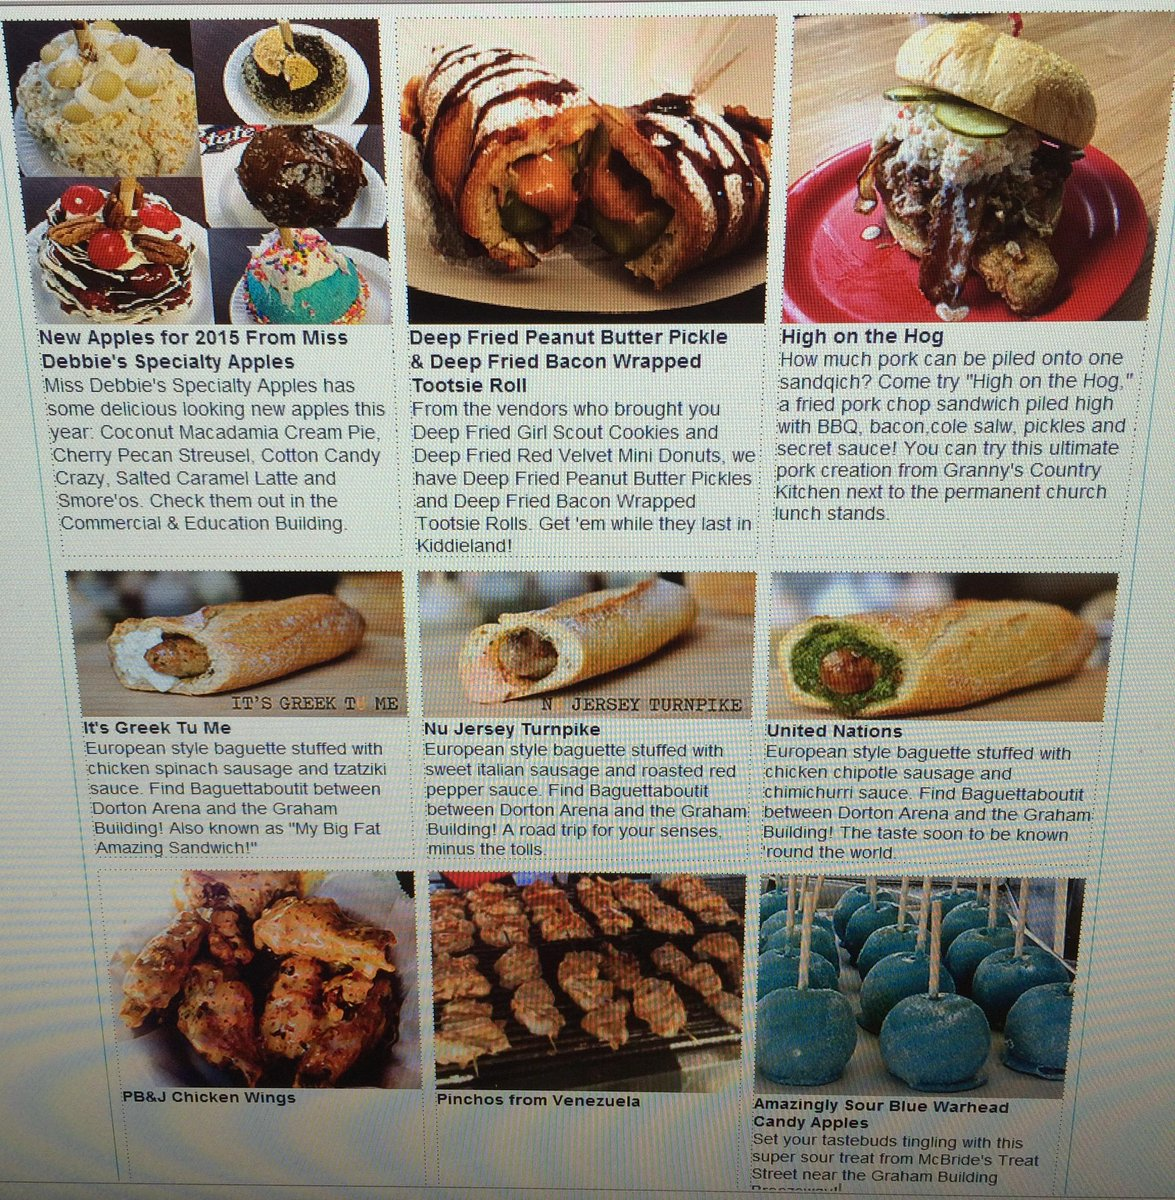 Things just got real. NEW FOODS RELEASED!! Eat all the things!! See them here: http://t.co/OggqYluXbq #ncstatefair http://t.co/j2KRi4rTbR